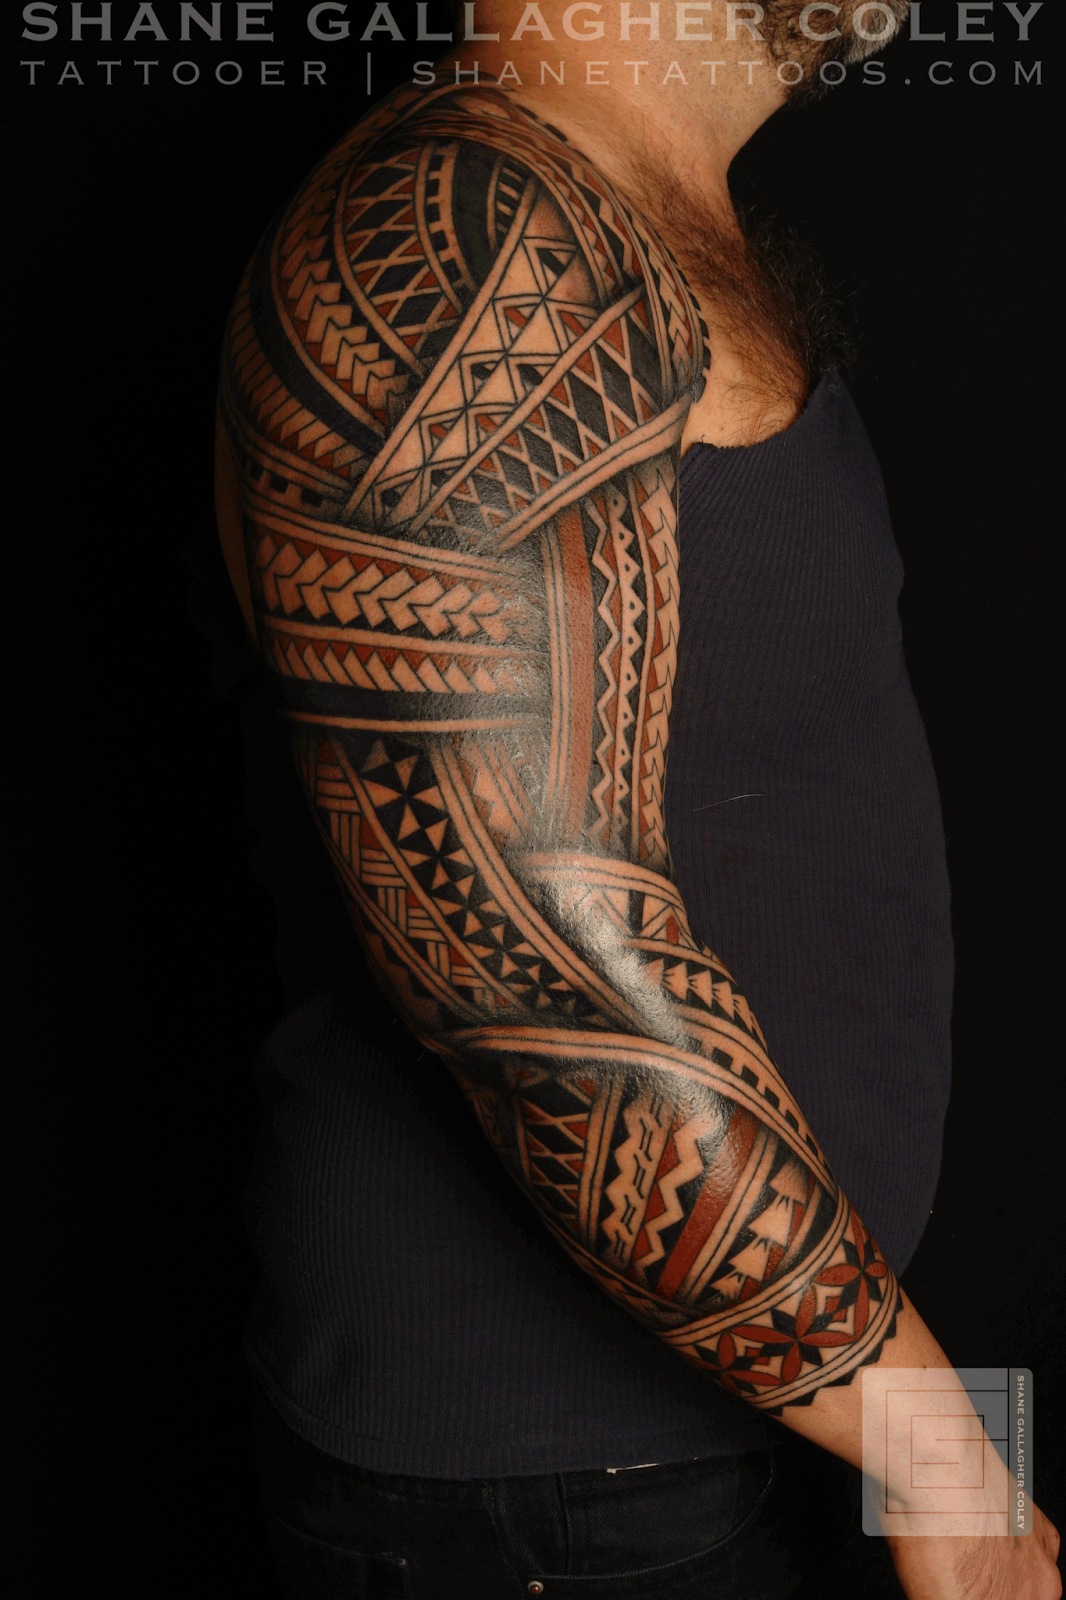 maori polynesian tattoo polynesian sleeve maori pinterest shane tattoo maori and tattoo. Black Bedroom Furniture Sets. Home Design Ideas